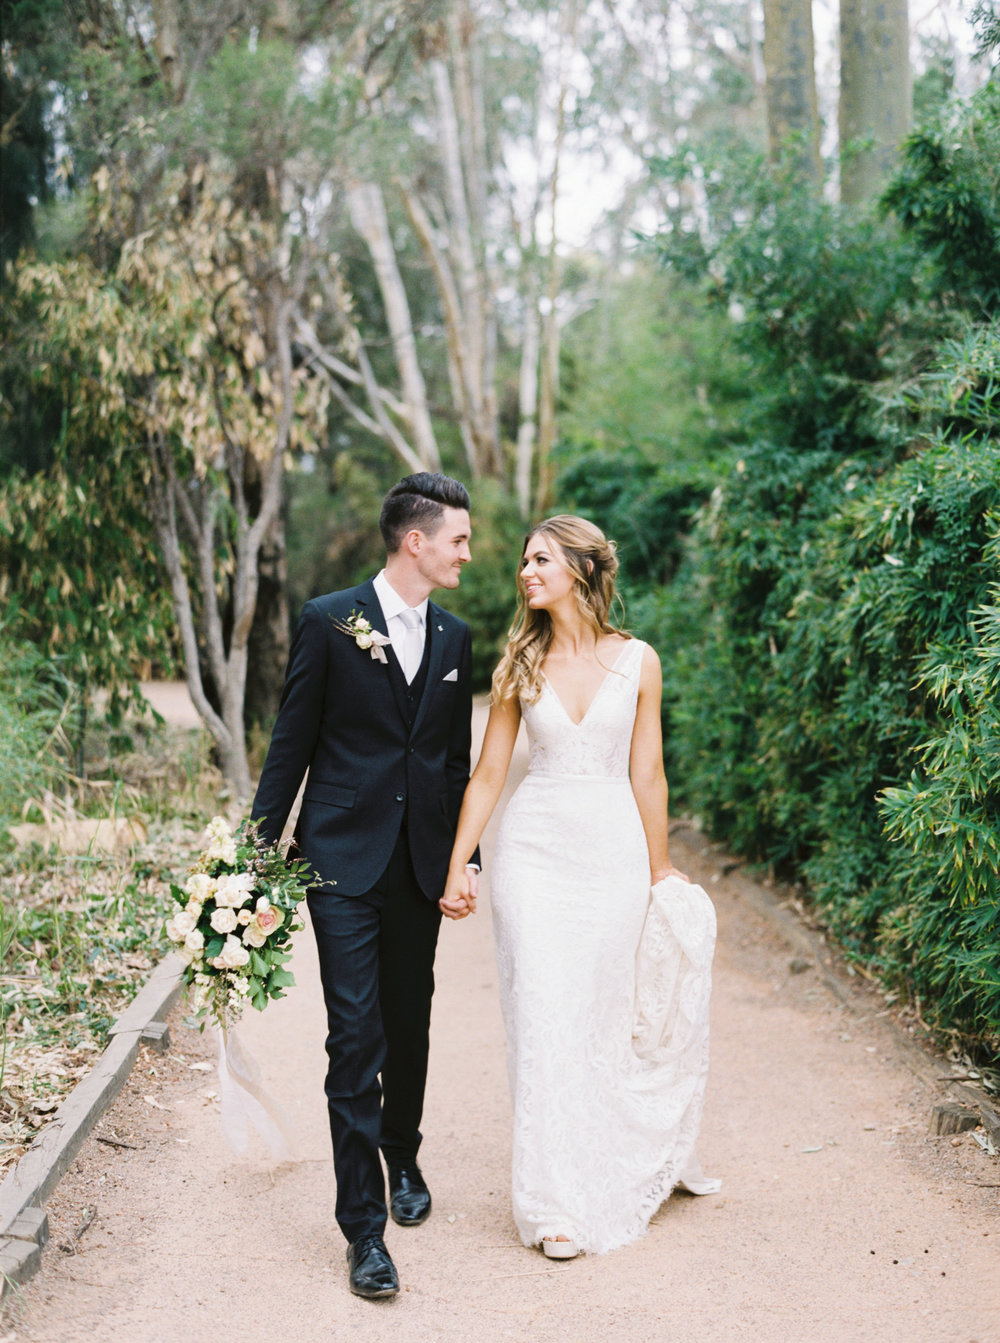 00025- Taronga Zoo Wedding Australia Fine Art Film Photographer Sheri McMahon.jpg